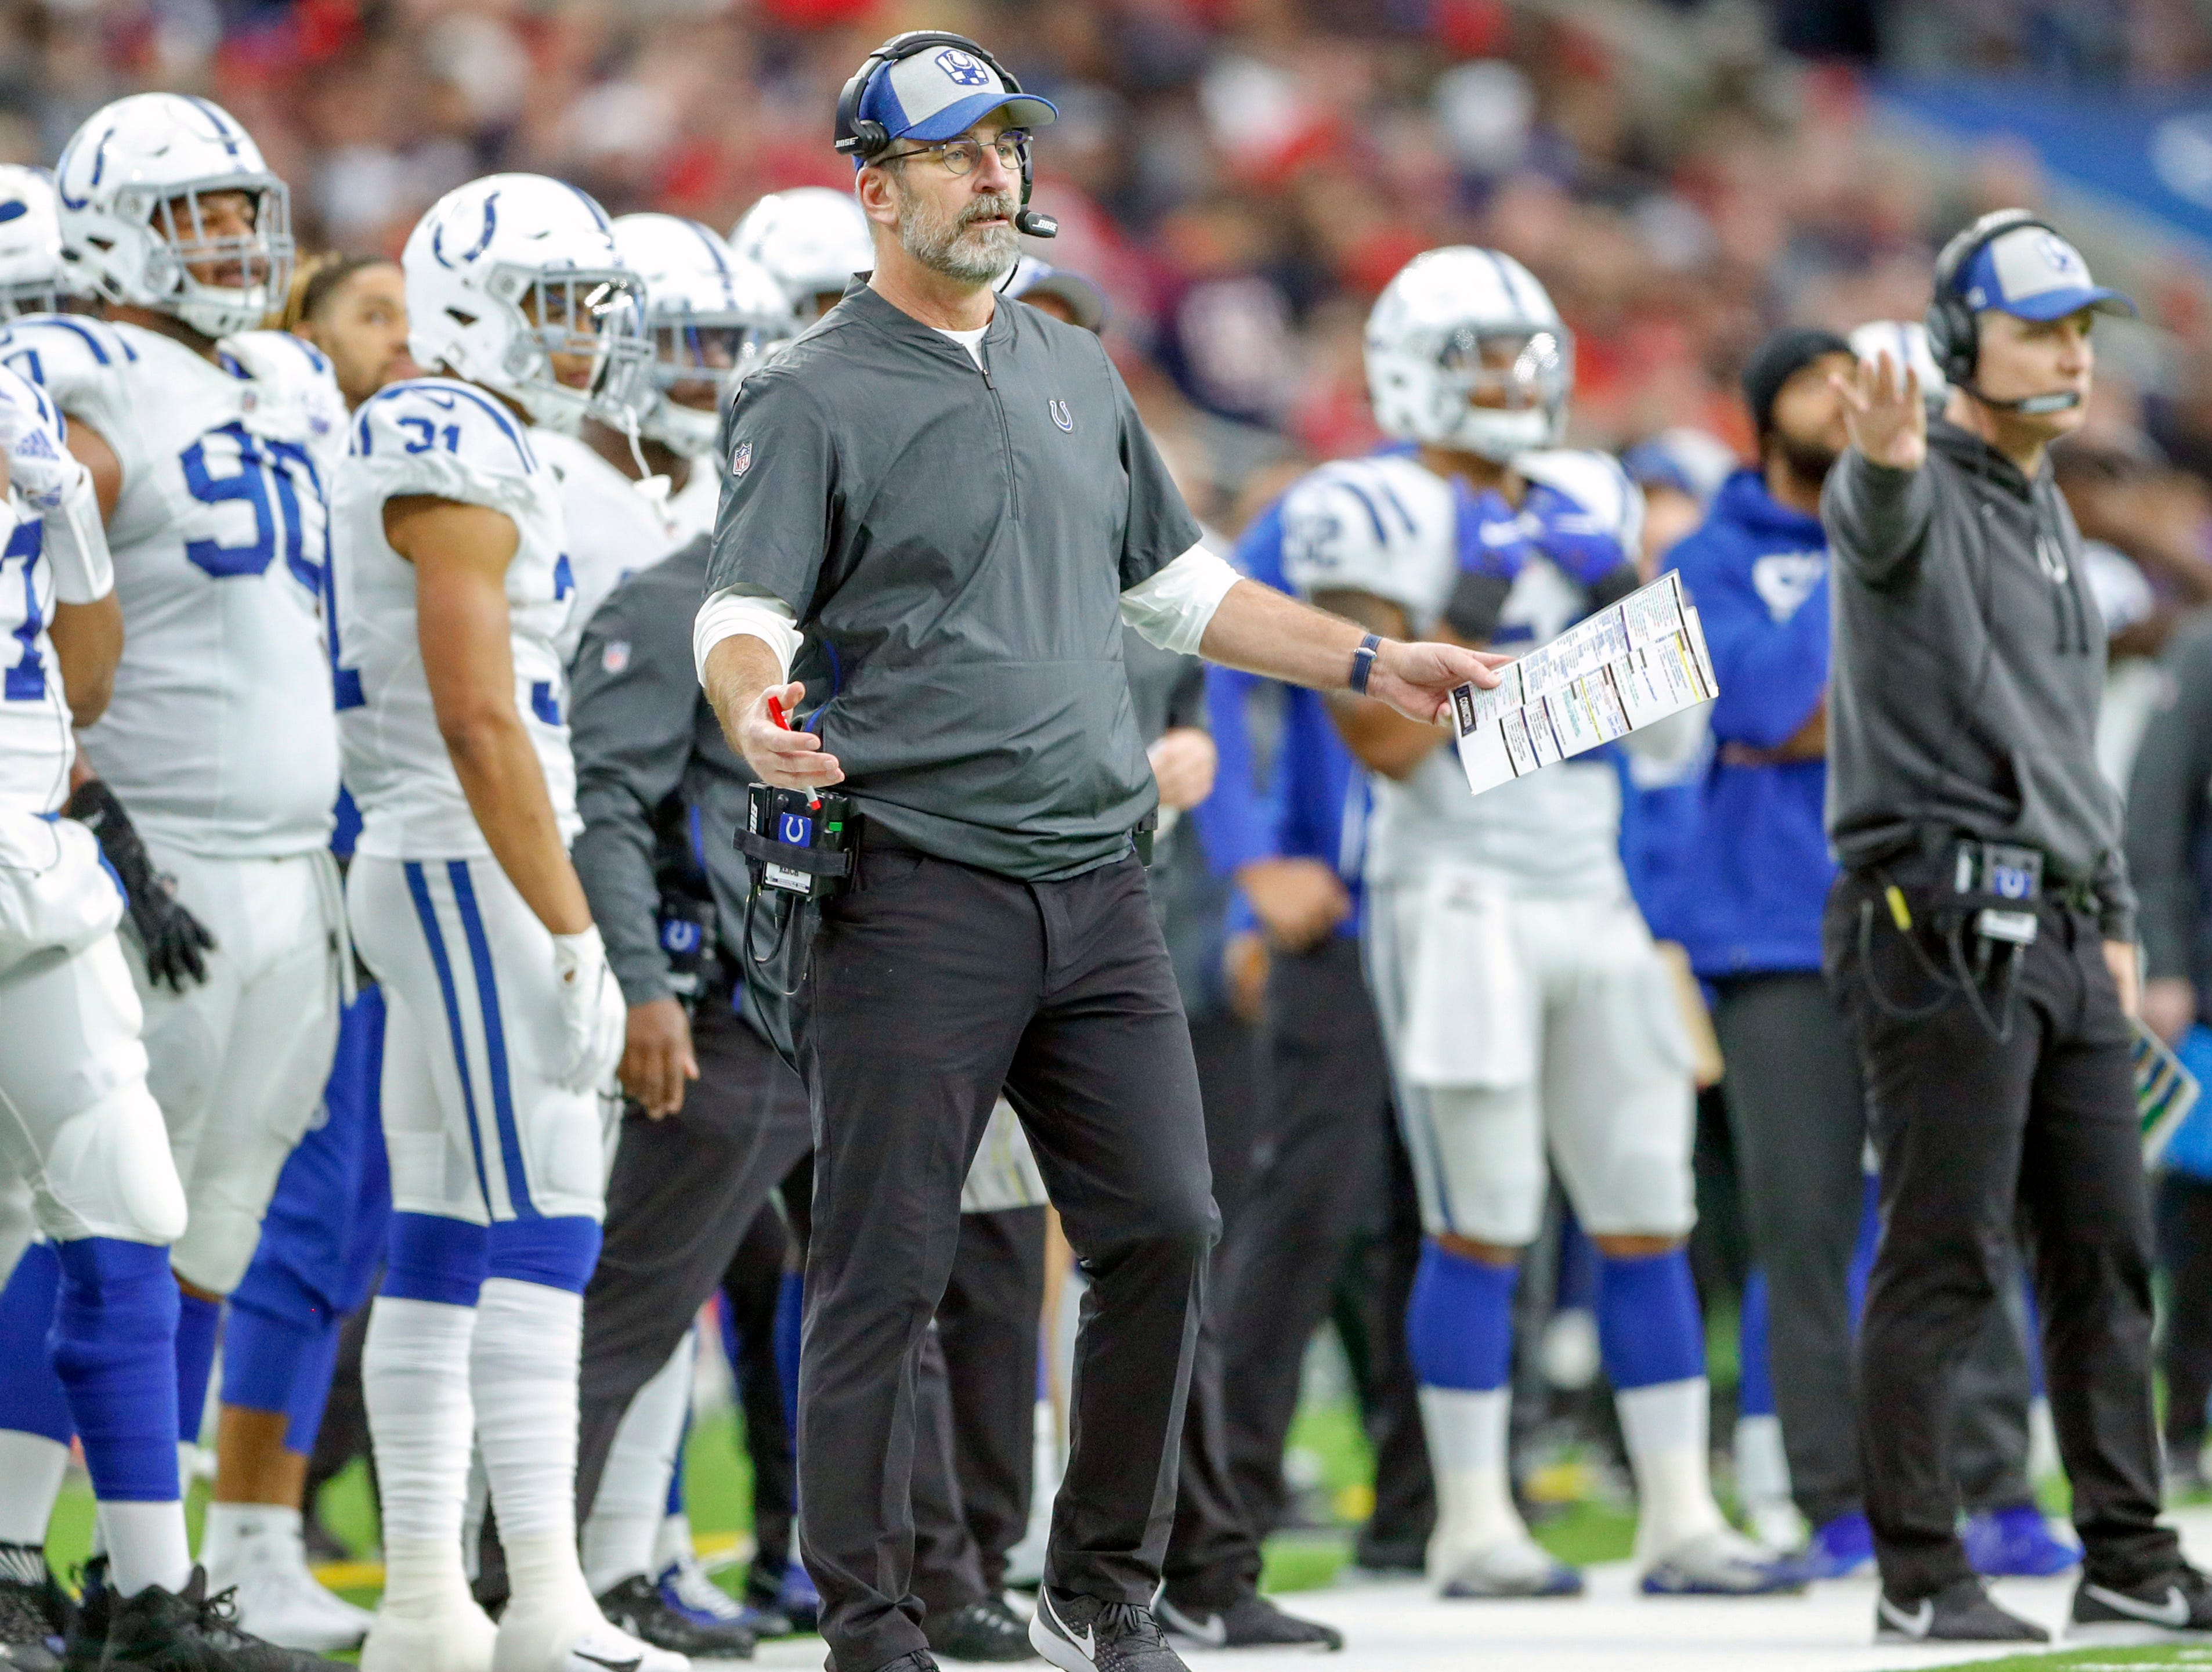 Indianapolis Colts head coach Frank Reich questions a call in the third quarter at NRG Stadium in Houston on Sunday, Dec. 9, 2018.